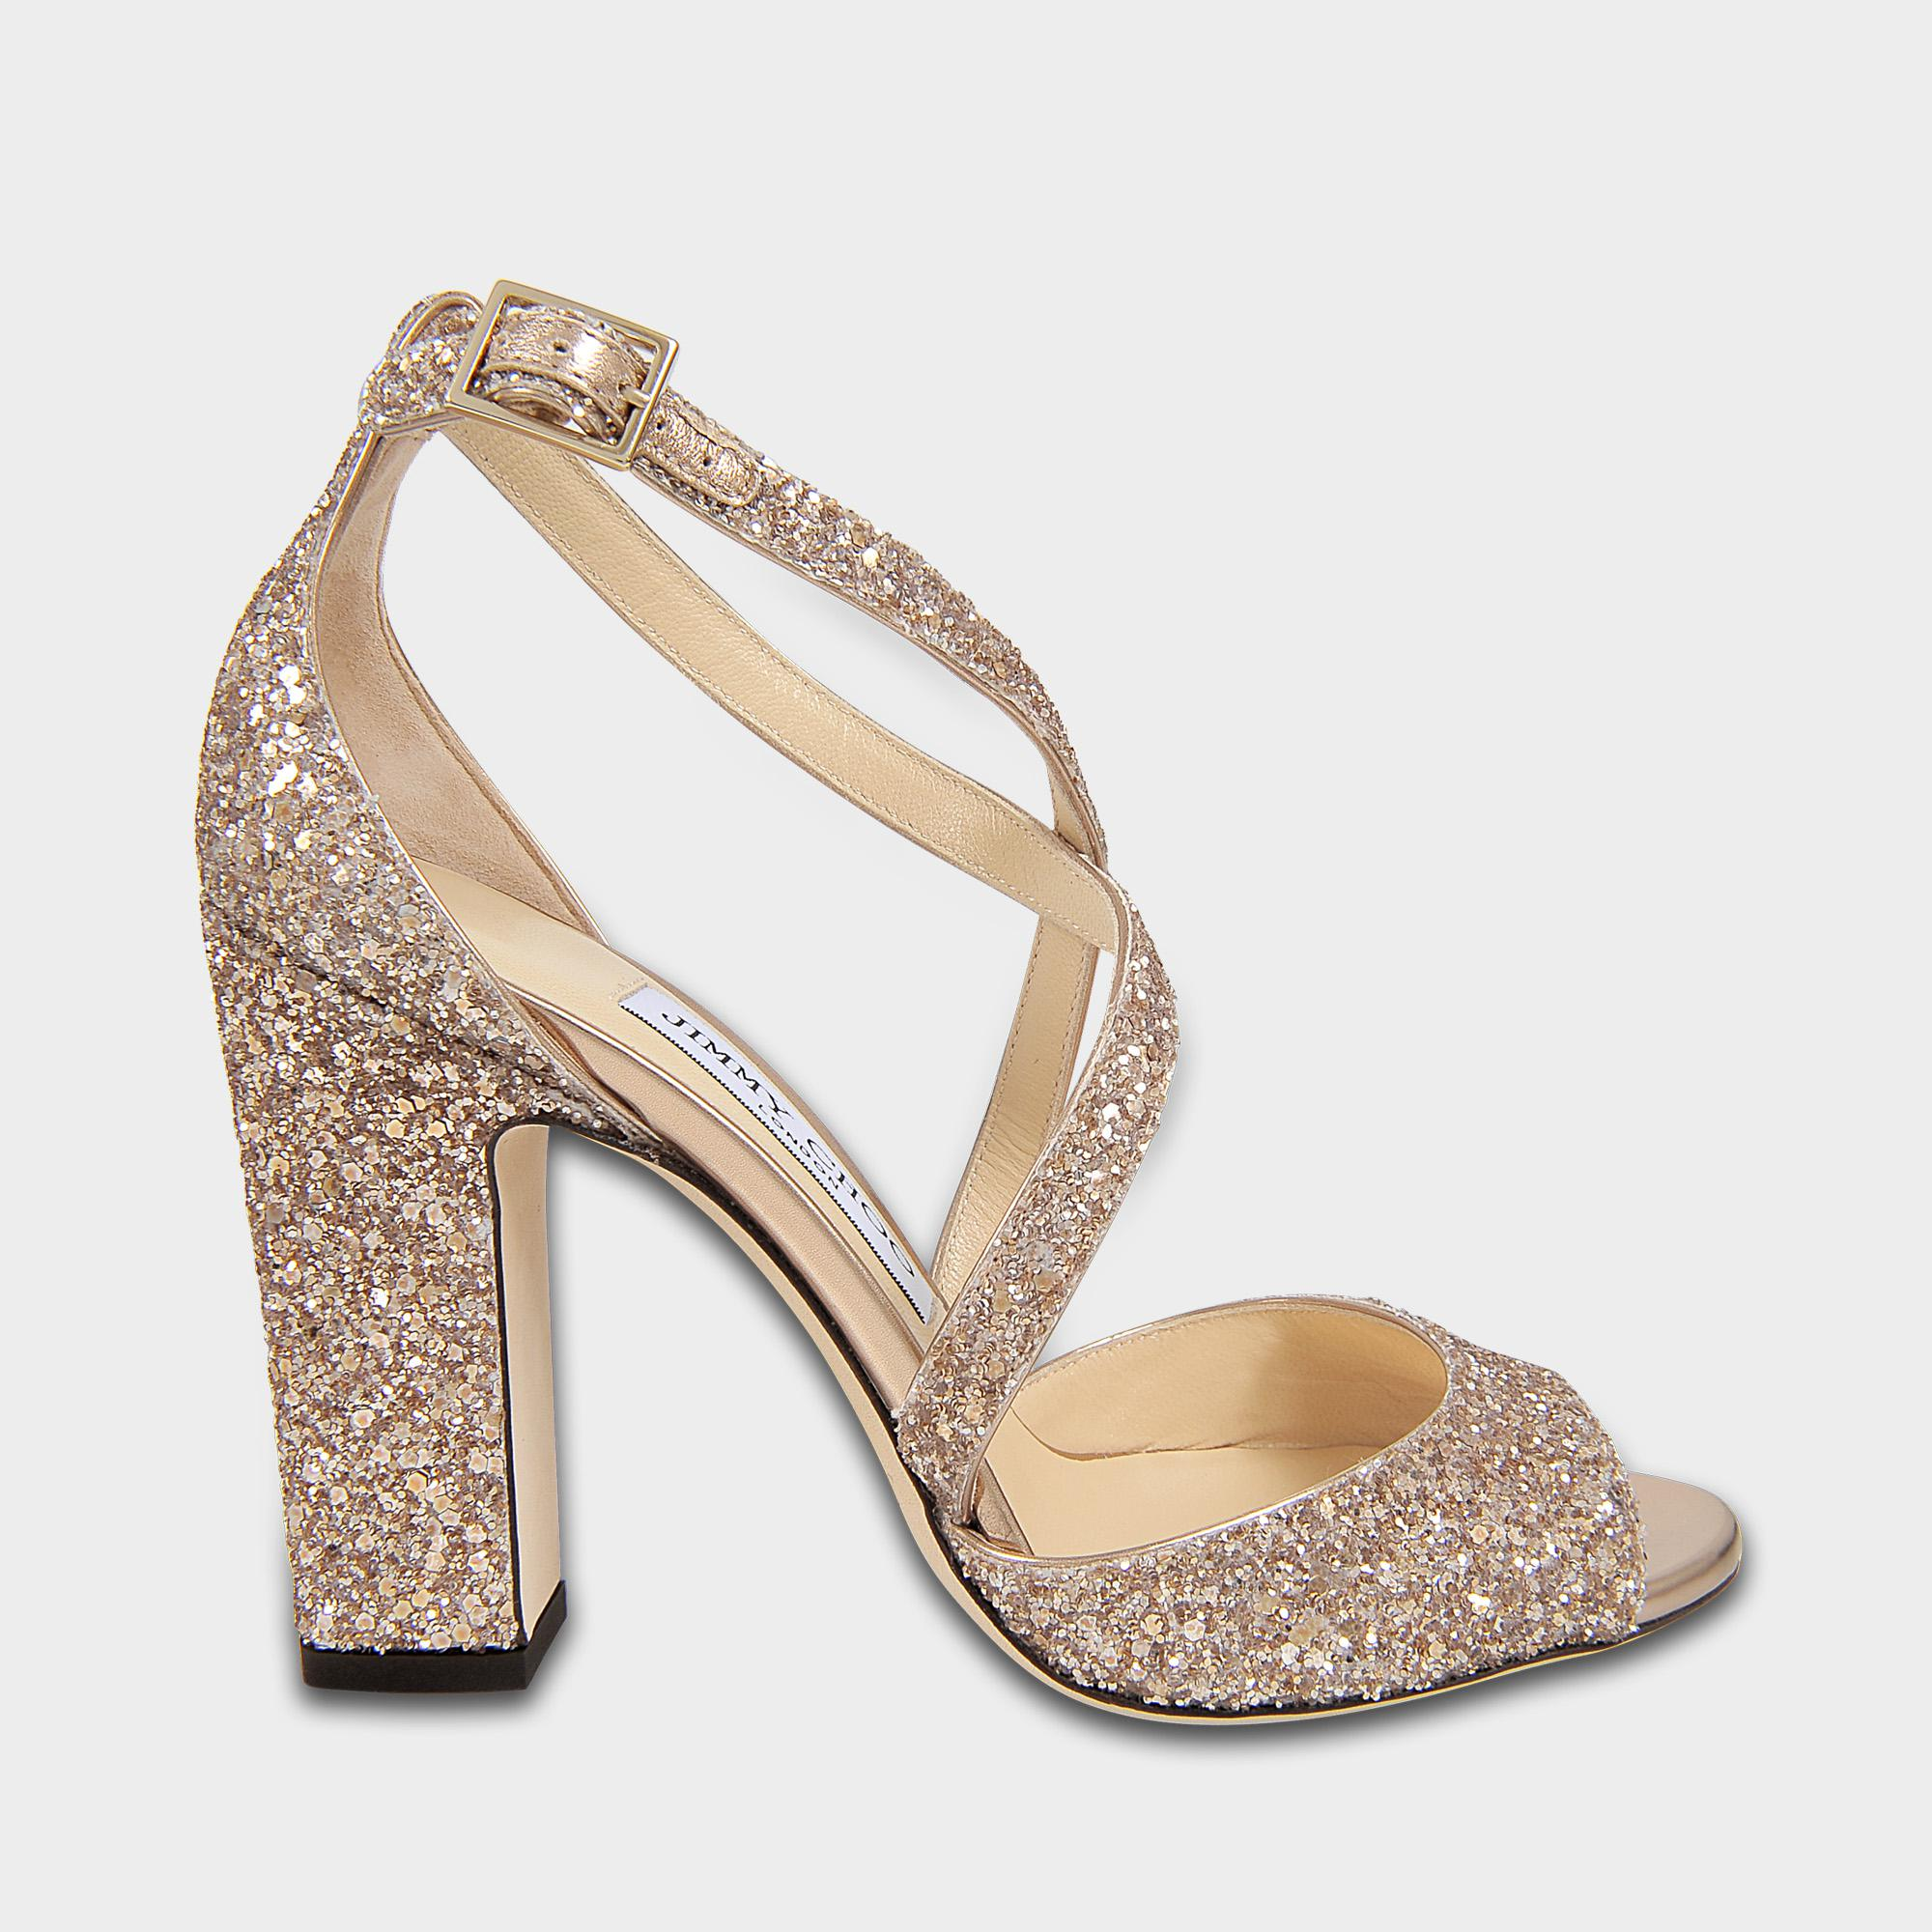 871817977846 Lyst - Jimmy Choo Carrie 100 Cross Front Sandals In Ballet Pink ...